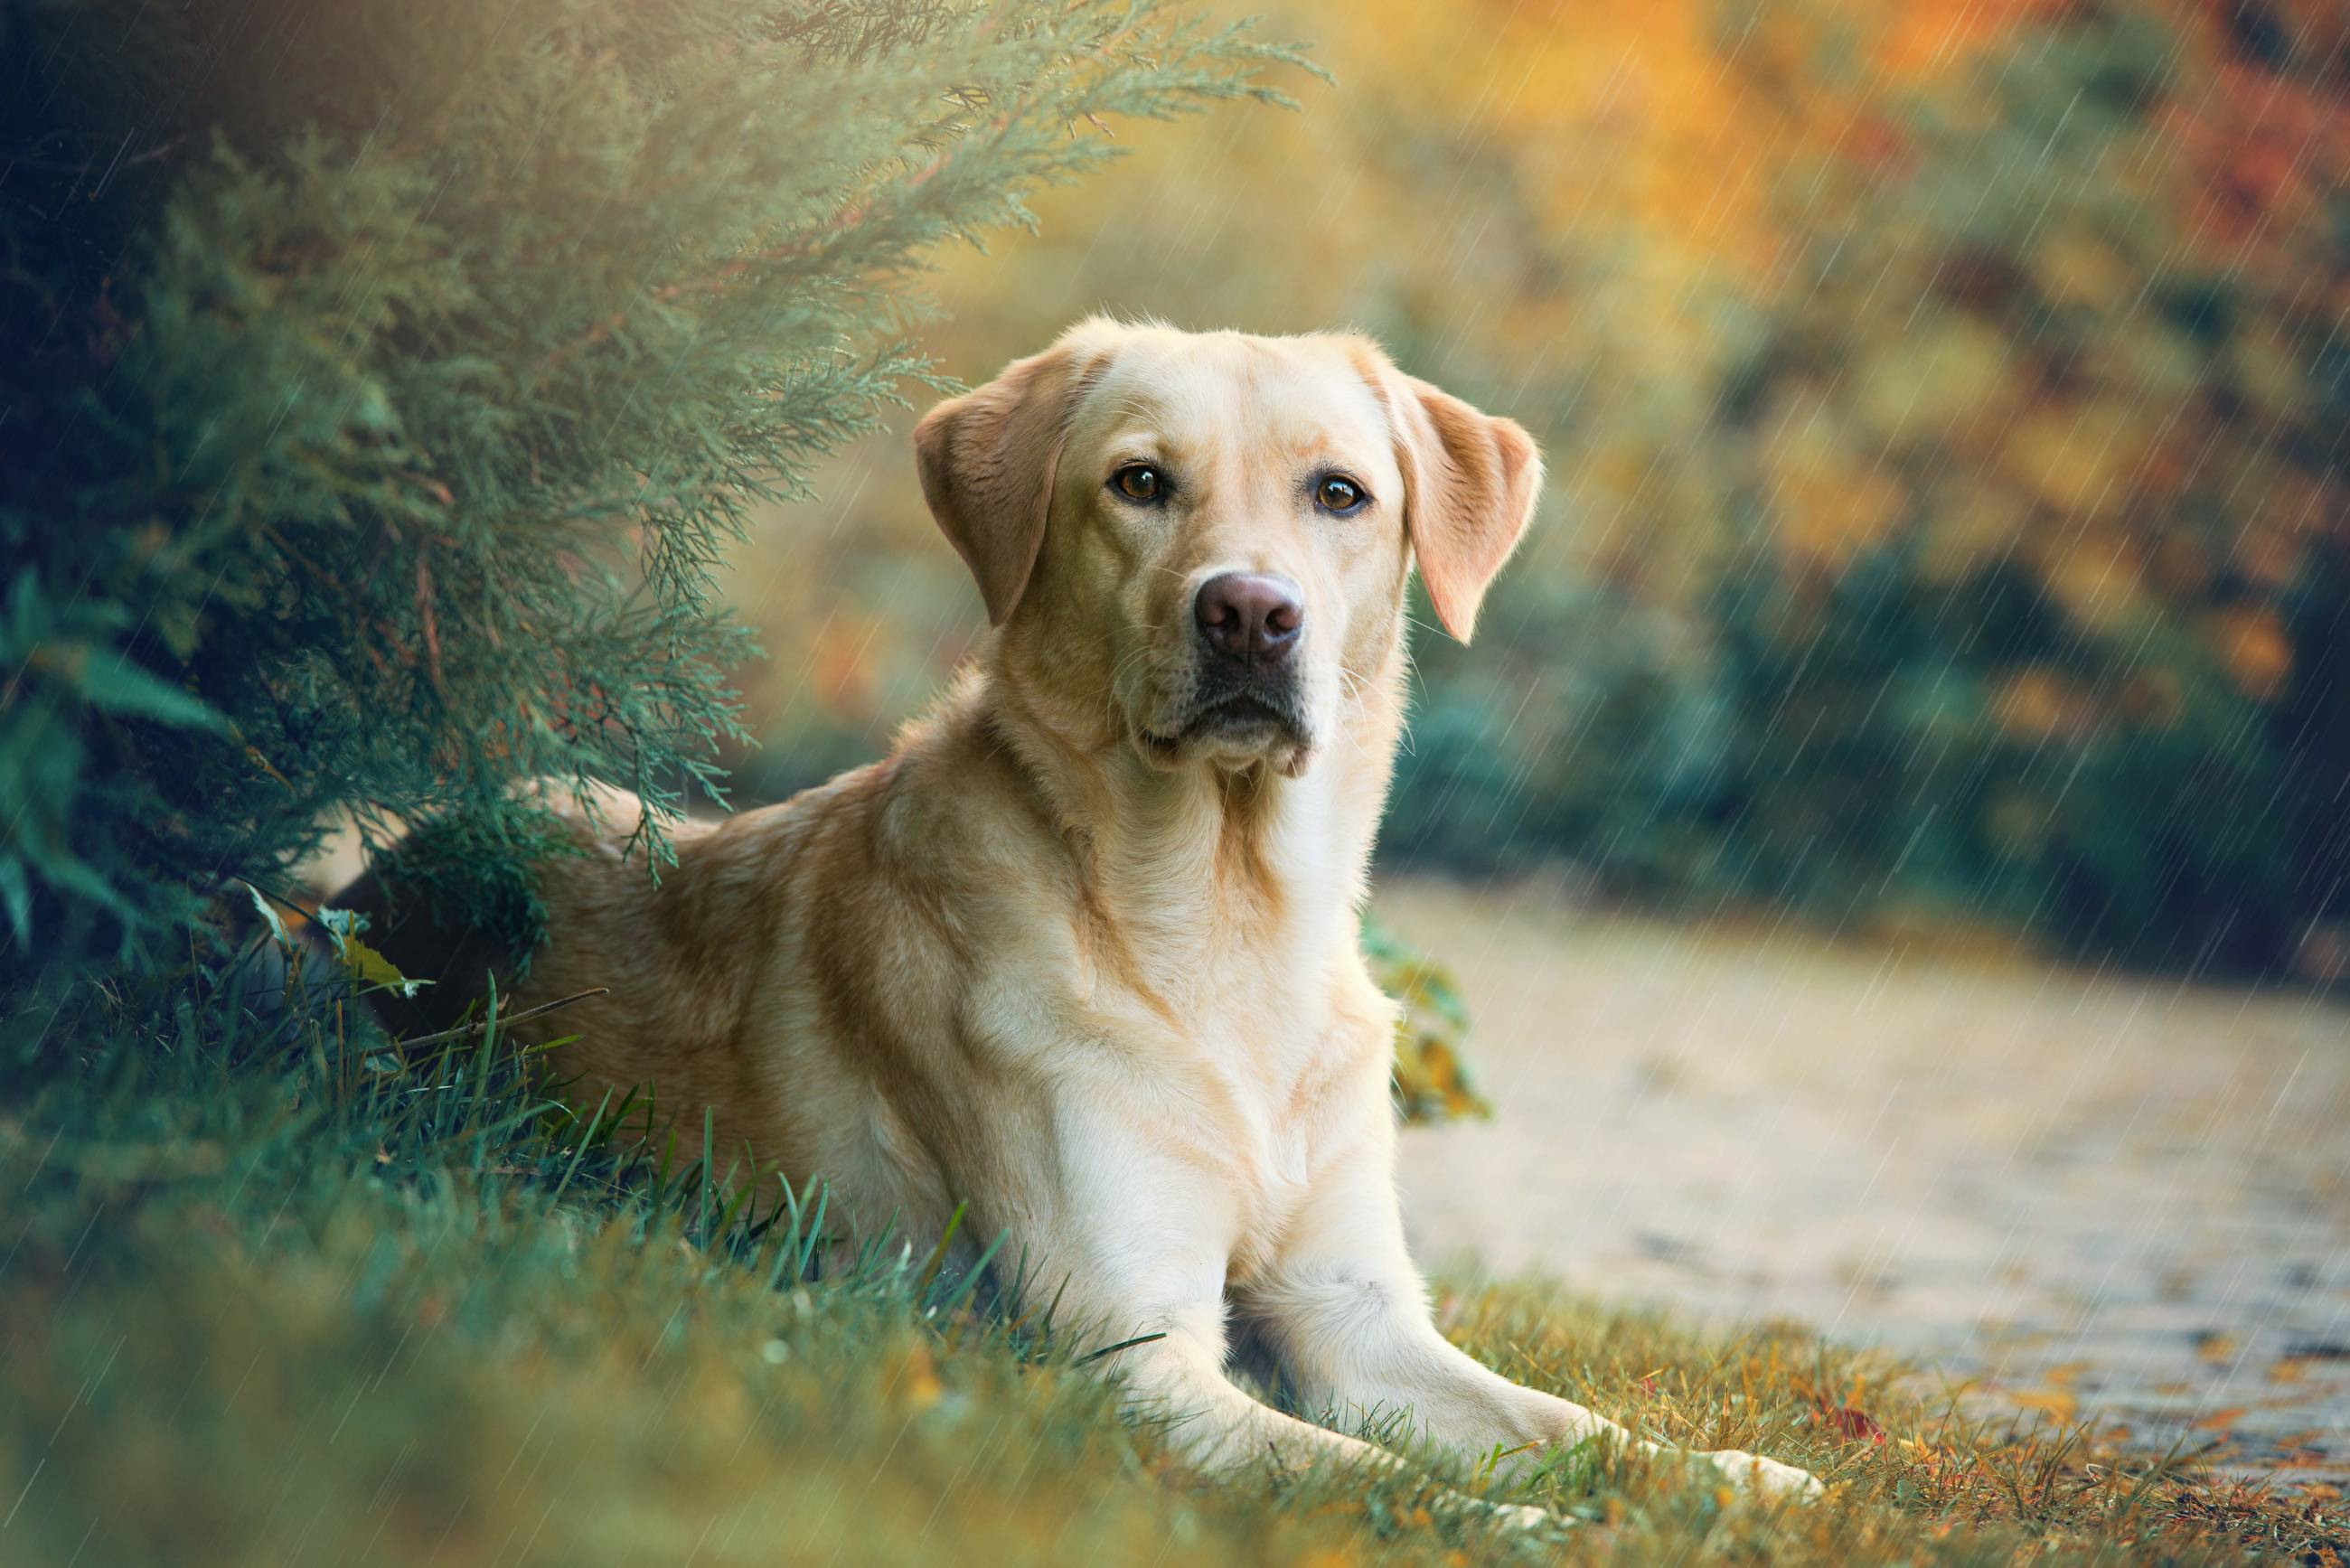 yellow labrador retriever sitting on grass with ears perked